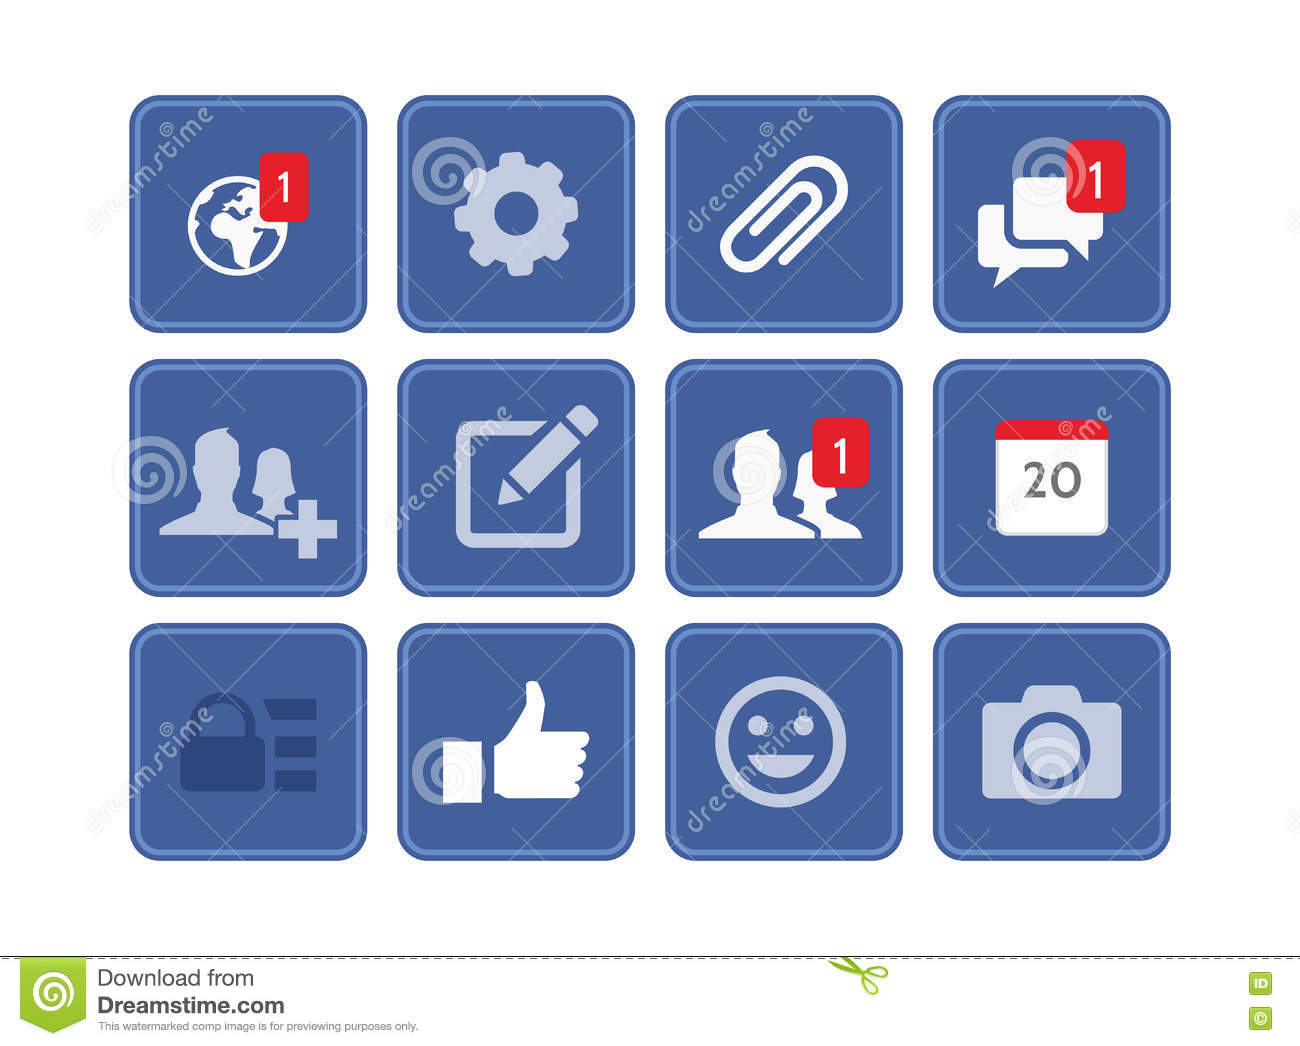 FACEBOOK VECTOR EDITABLE ICON SET ISOLATED ON WHITE